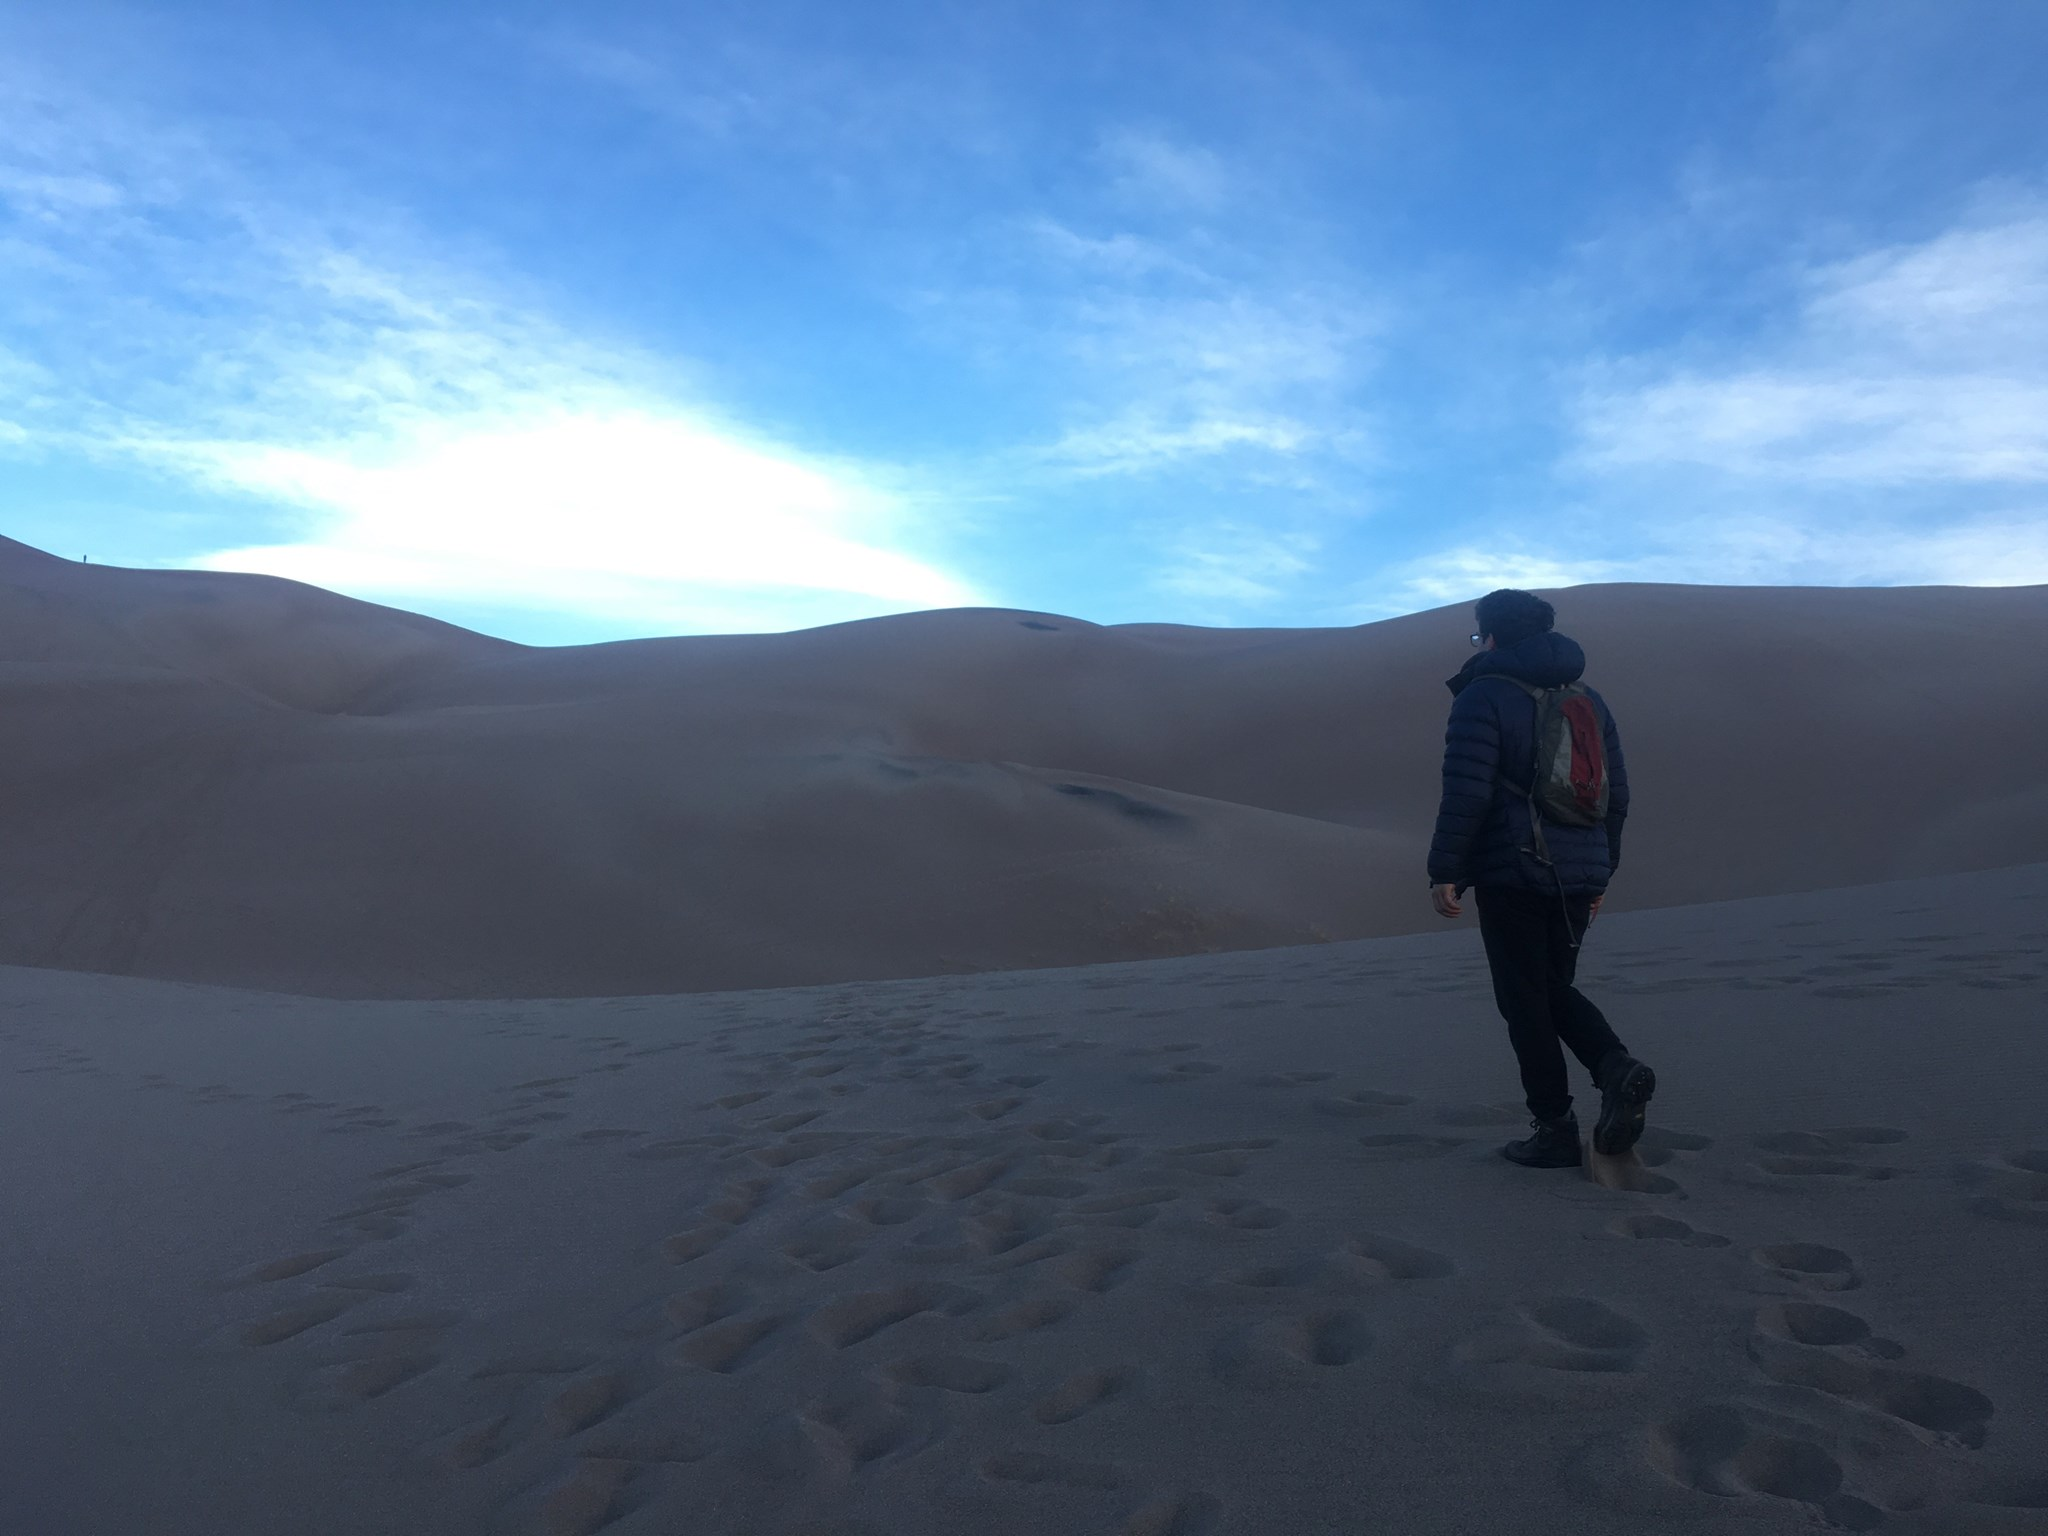 Great sand dunes national park, co, 2017